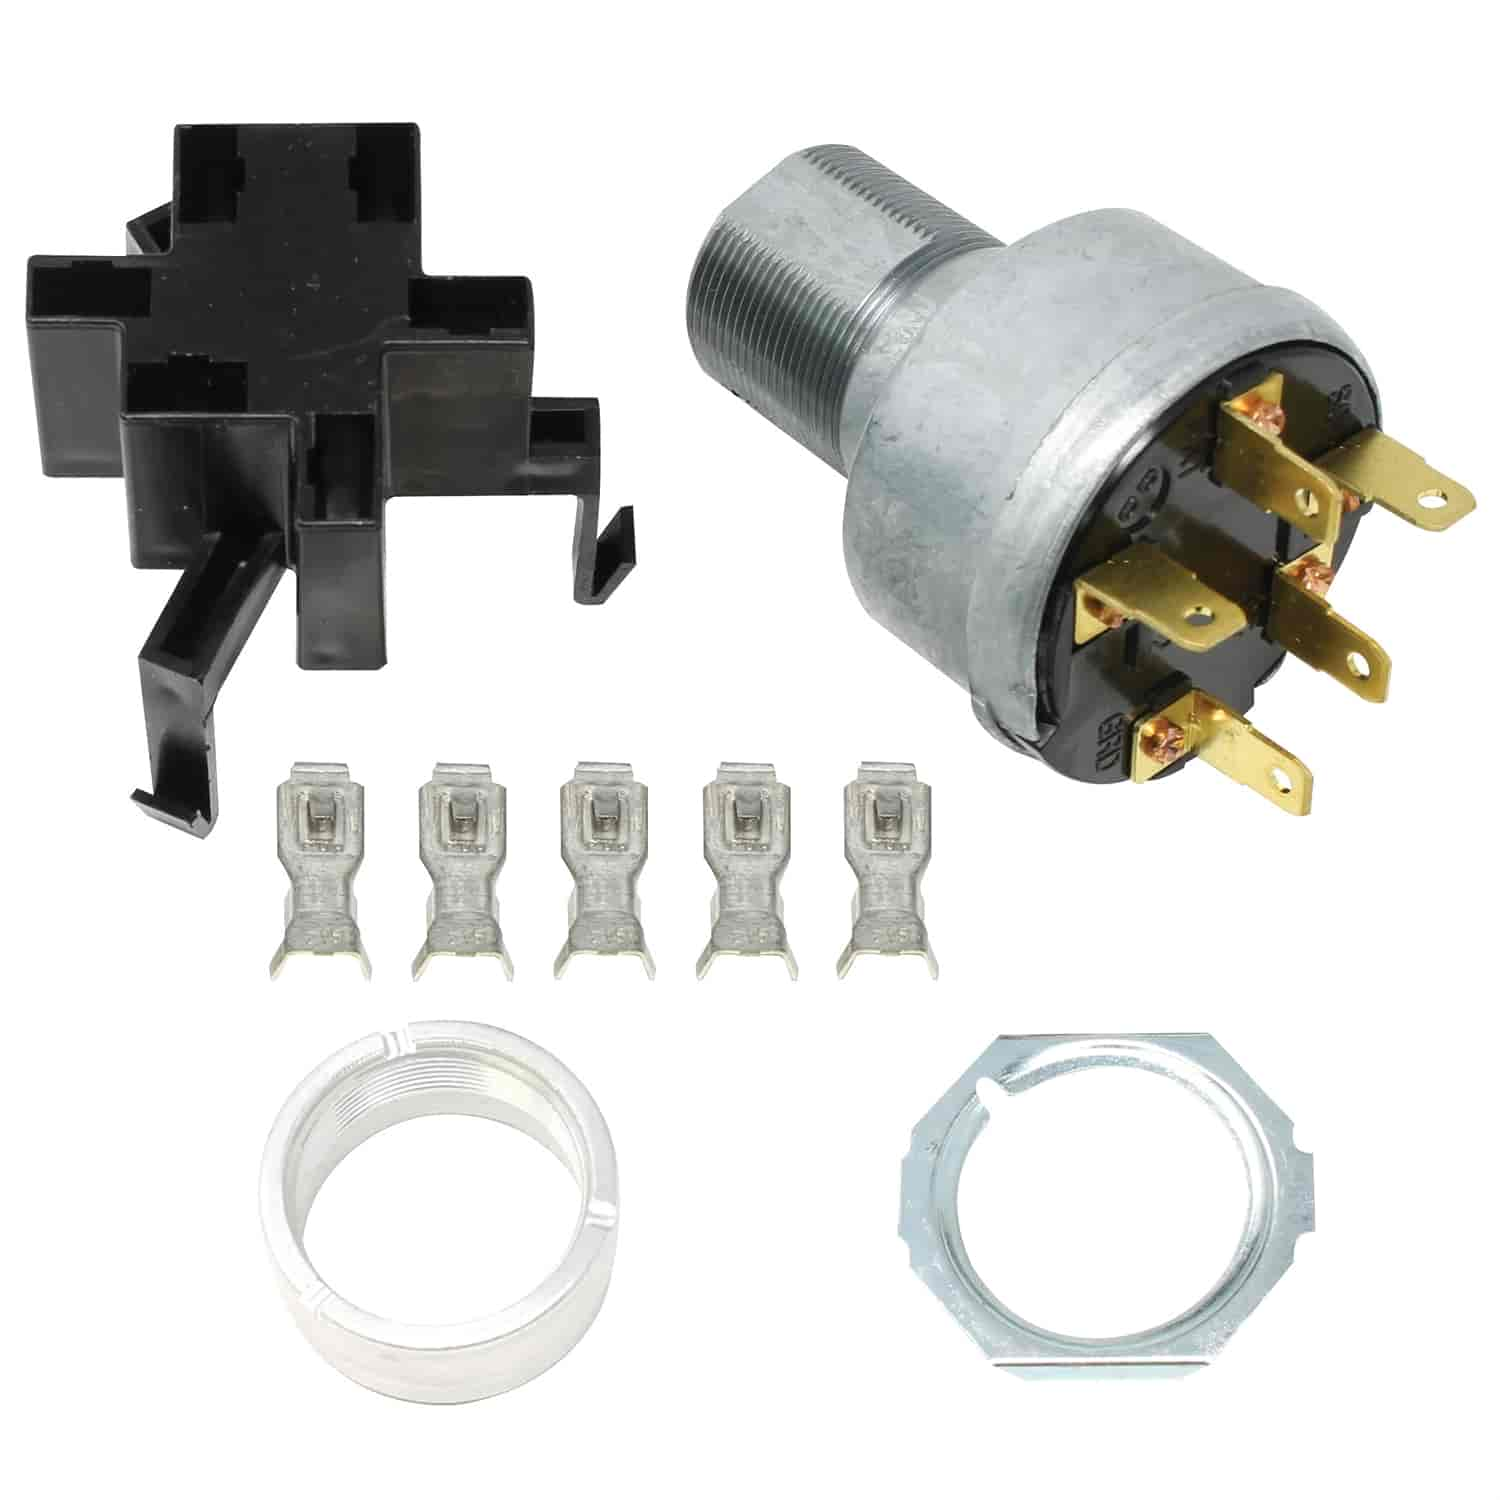 hight resolution of american autowire 500675 ignition switch 1957 chevy full size car ignition switch wiring on american autowire chevy ignition switch